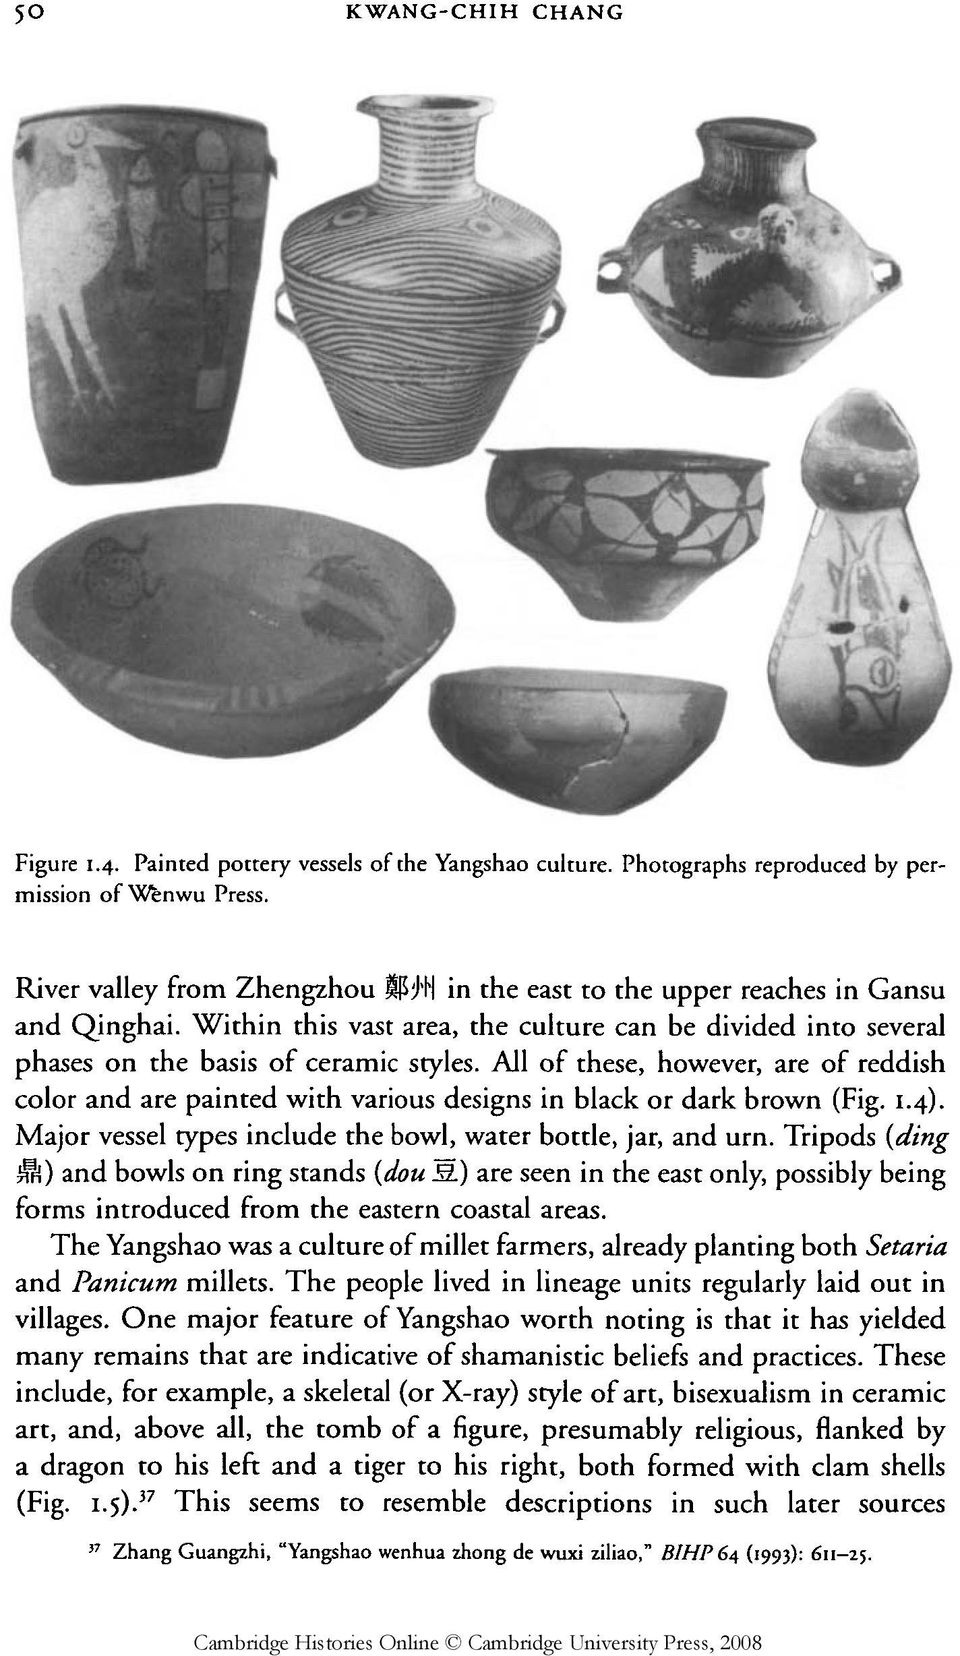 All of these, however, are of reddish color and are painted with various designs in black or dark brown (Fig. 1.4). Major vessel types include the bowl, water bottle, jar, and urn.